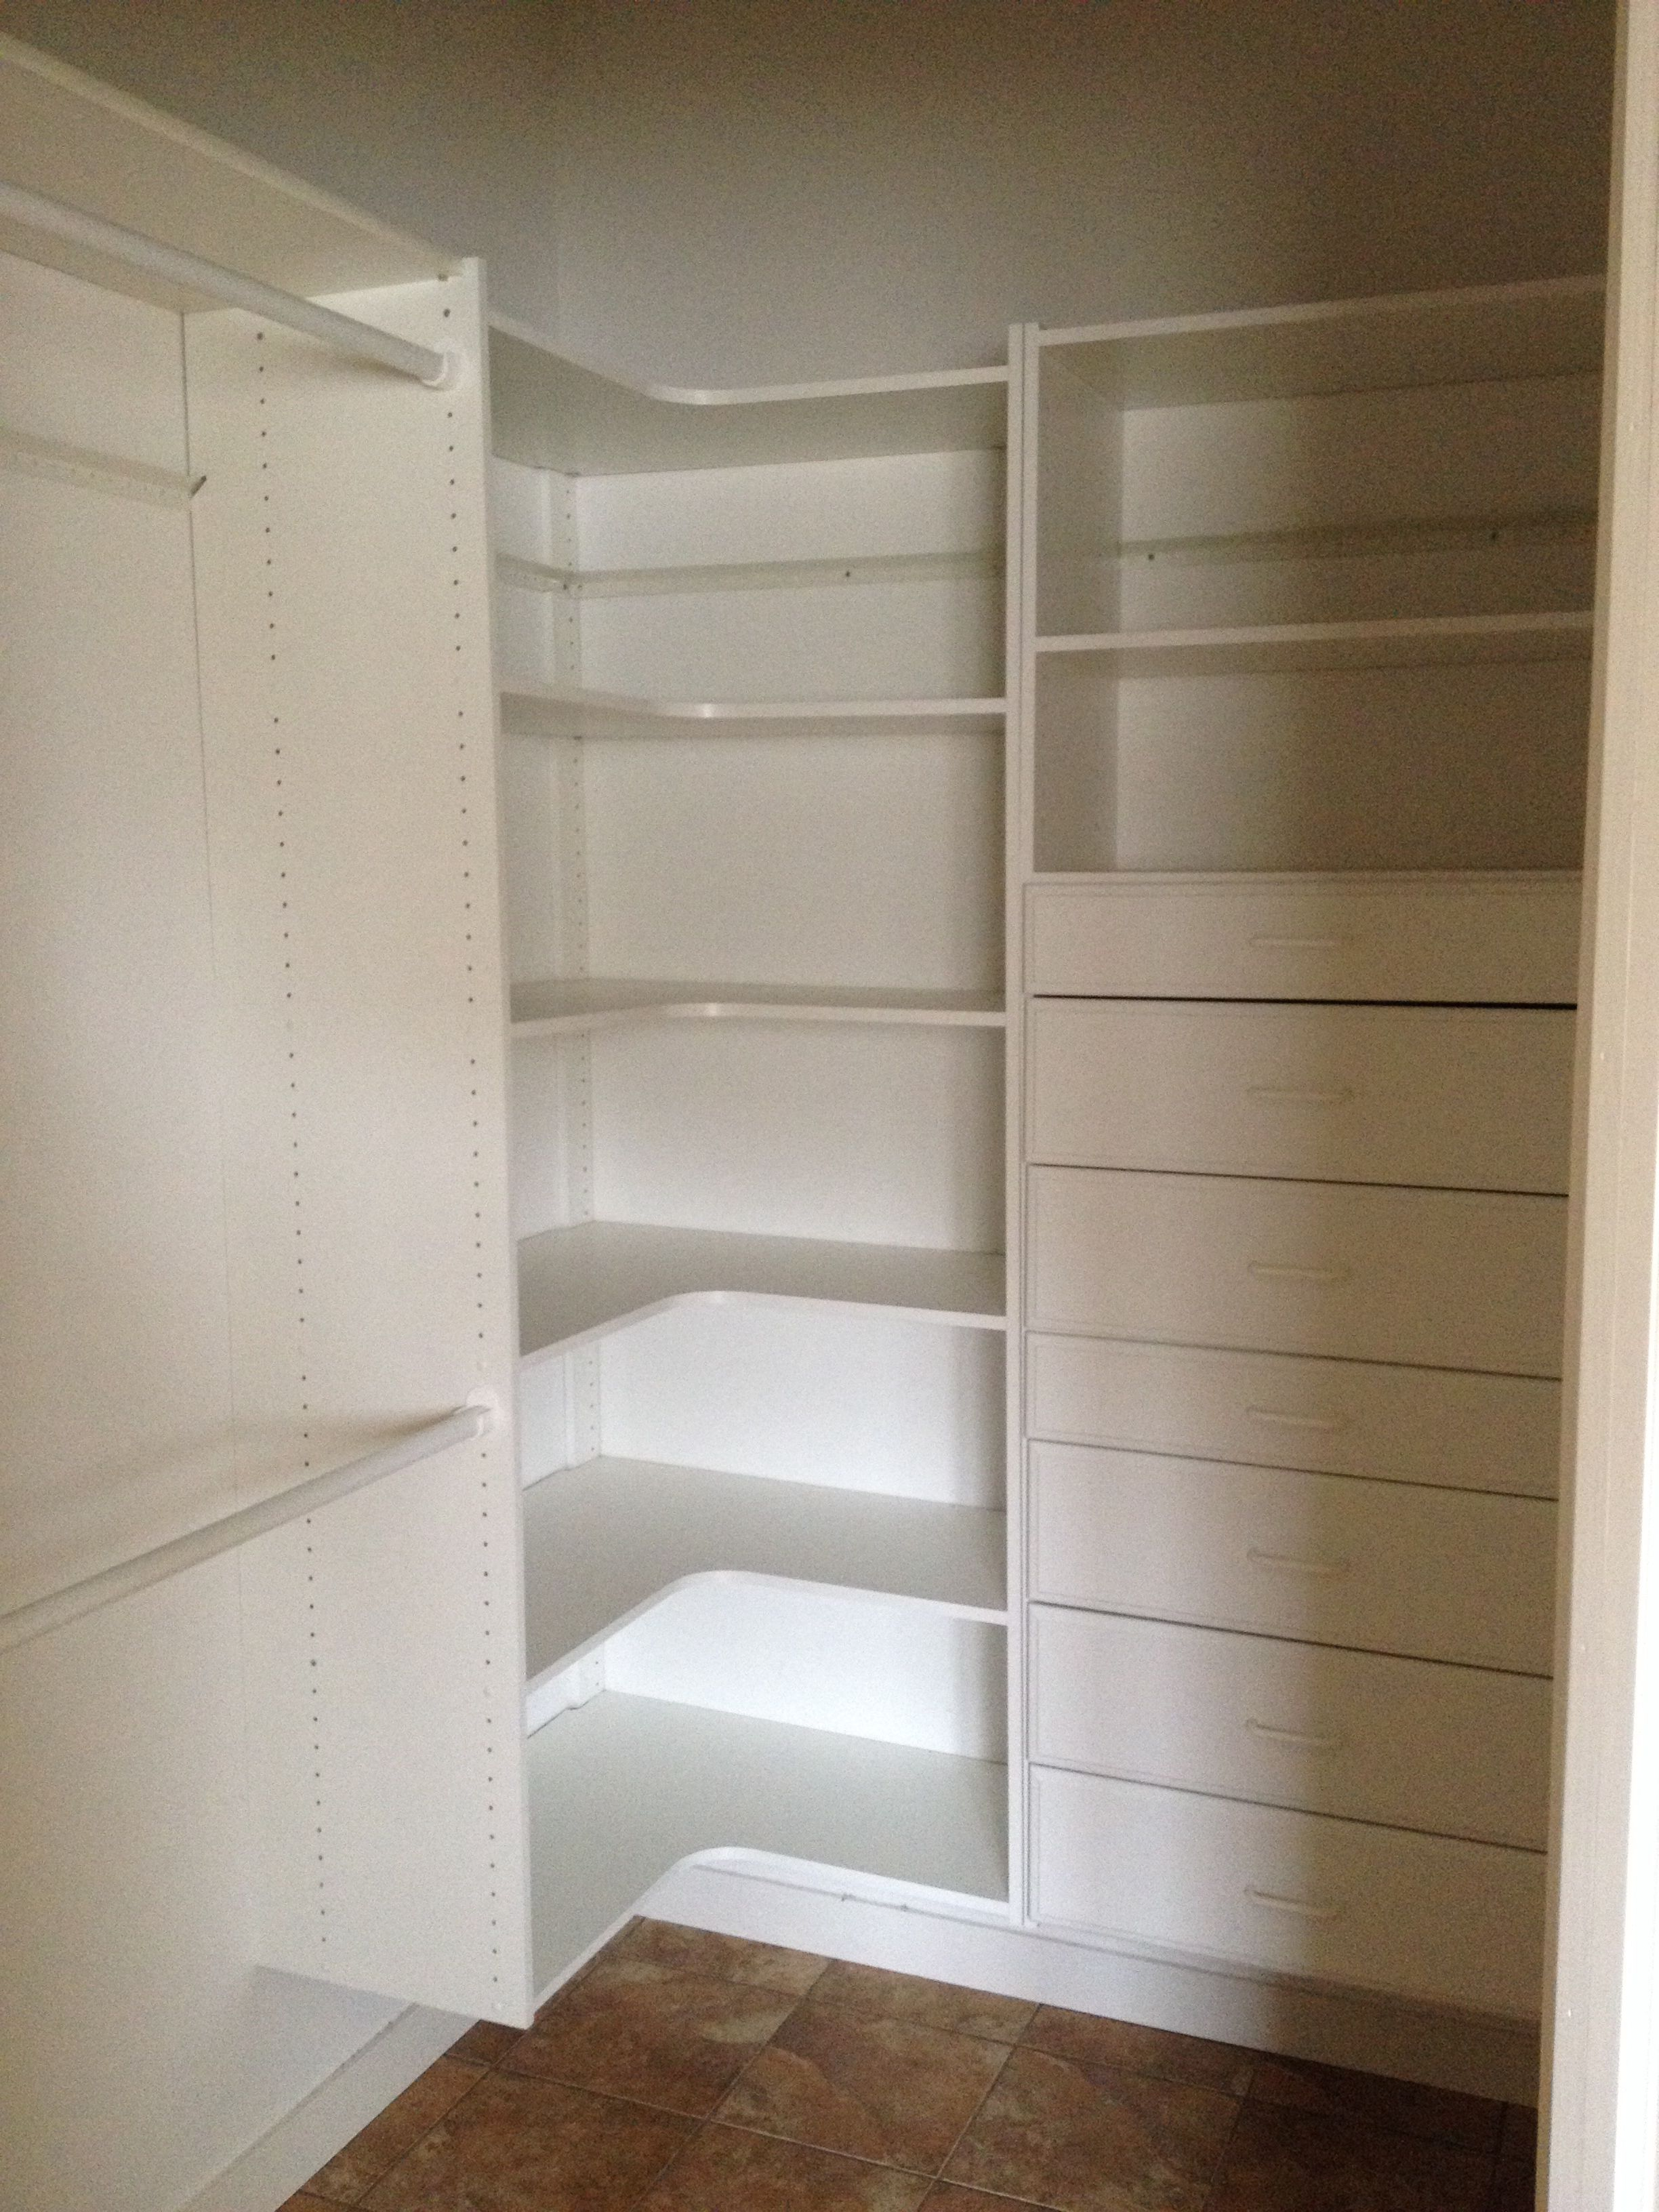 Closet Shelves Master Bedroom Walk In Closet Idea For Maximum Storage And